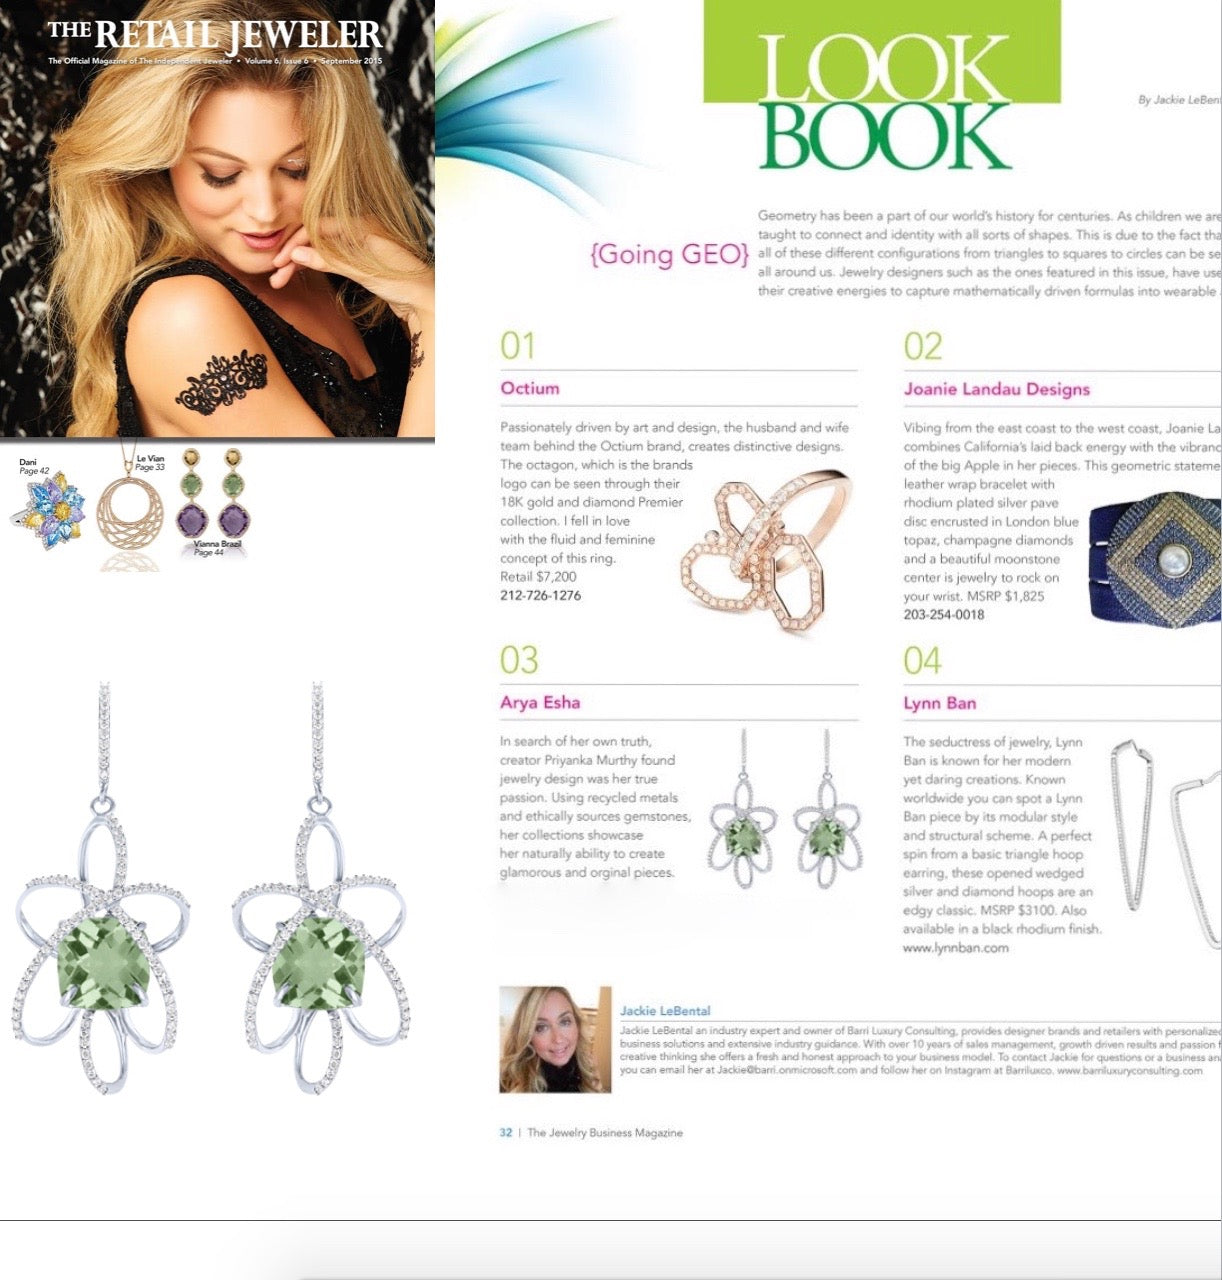 Arya Esha Earrings Included in the Style Pages